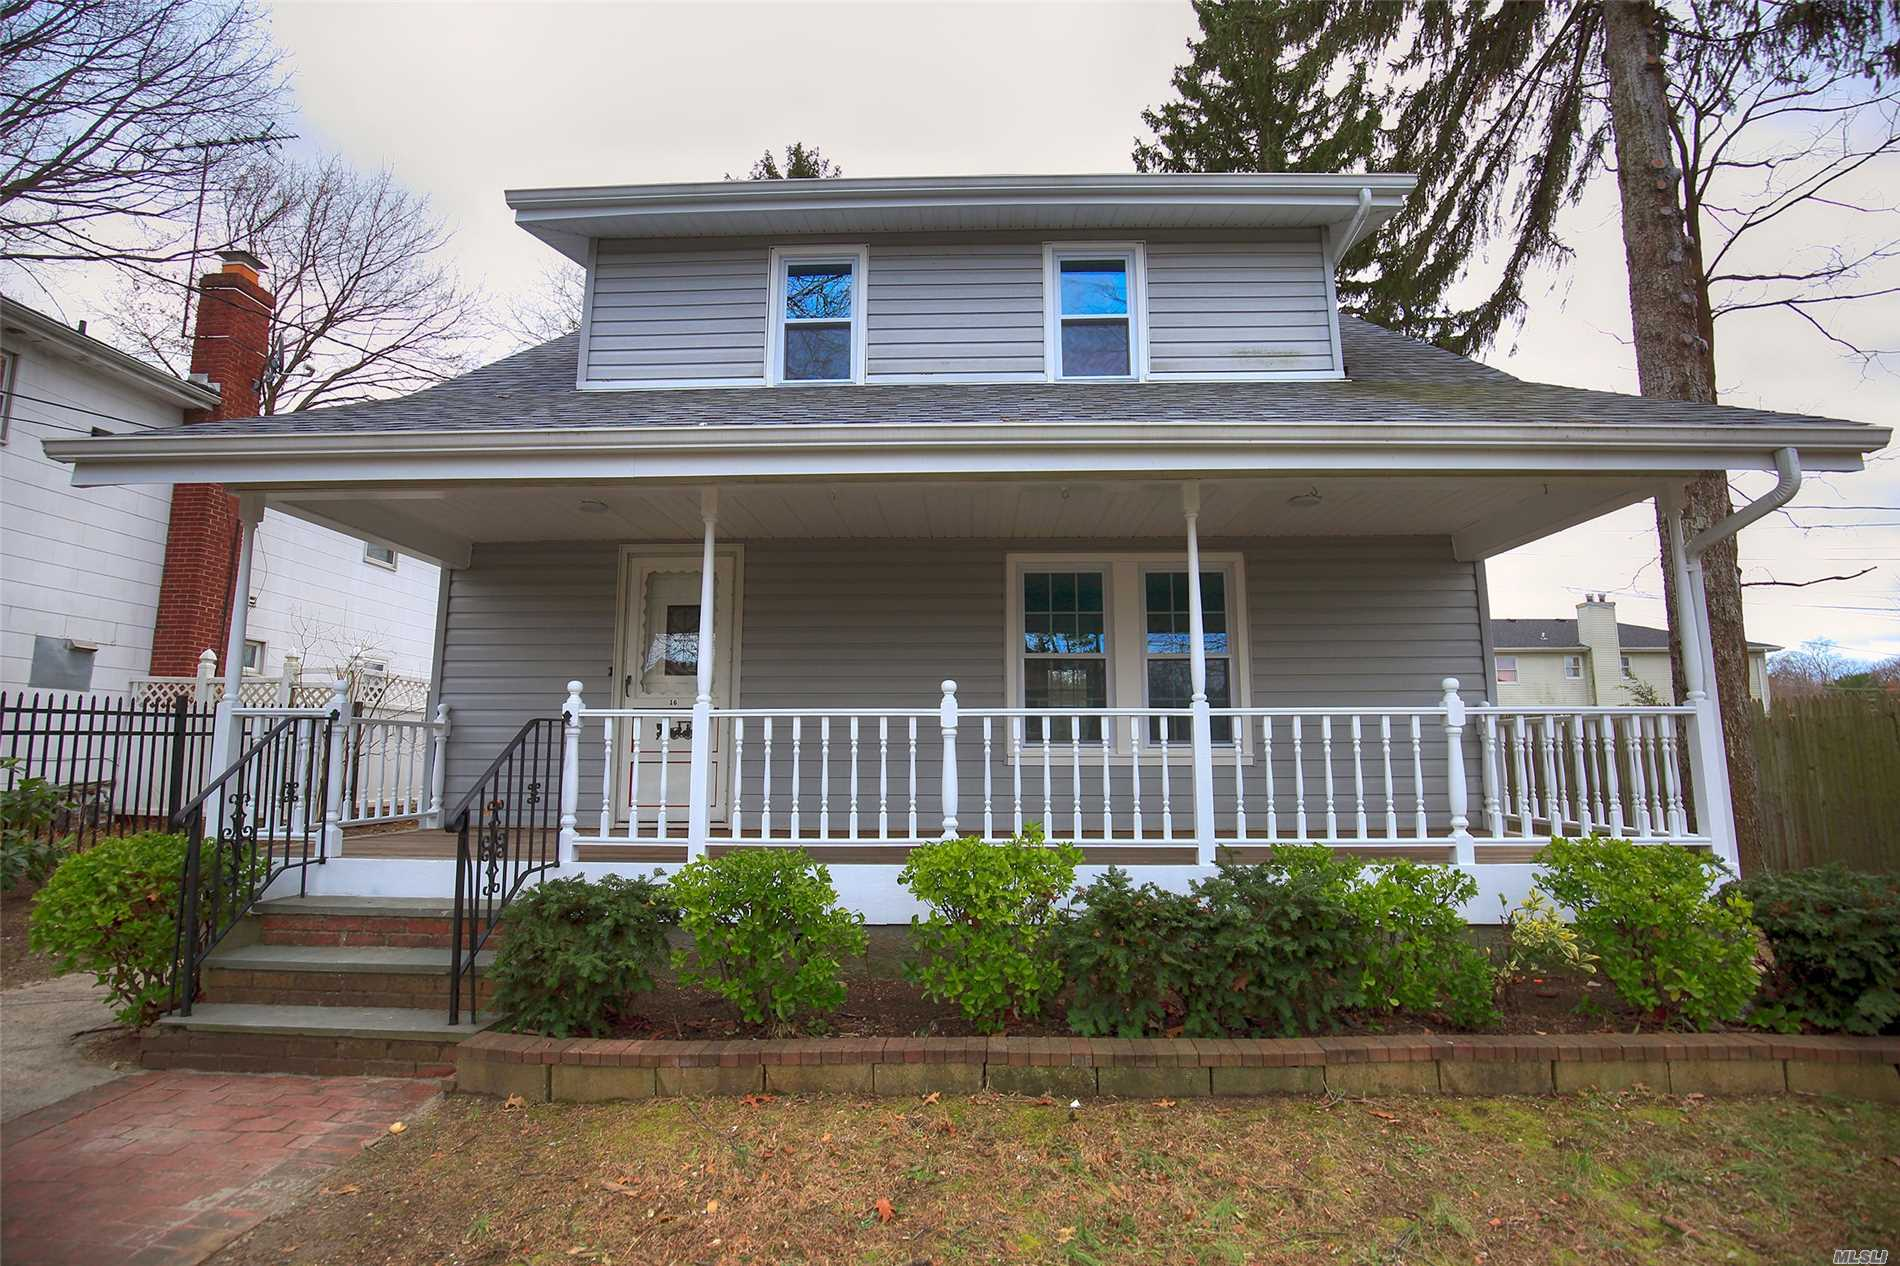 Fully Renovated Home On Quiet Midblock Street In Glen Cove. Brand New Kitchen, Appliances, Baths, Floors, Walls, Windows, Boiler, Cac, & Roof. Huge Property W/Big Backyard, Room For Pool. Oversized Detached 2 Car Garage W/Long Driveway. Full Finished Basement With Br, Family Rm, Laundry Rm, Full Bath.